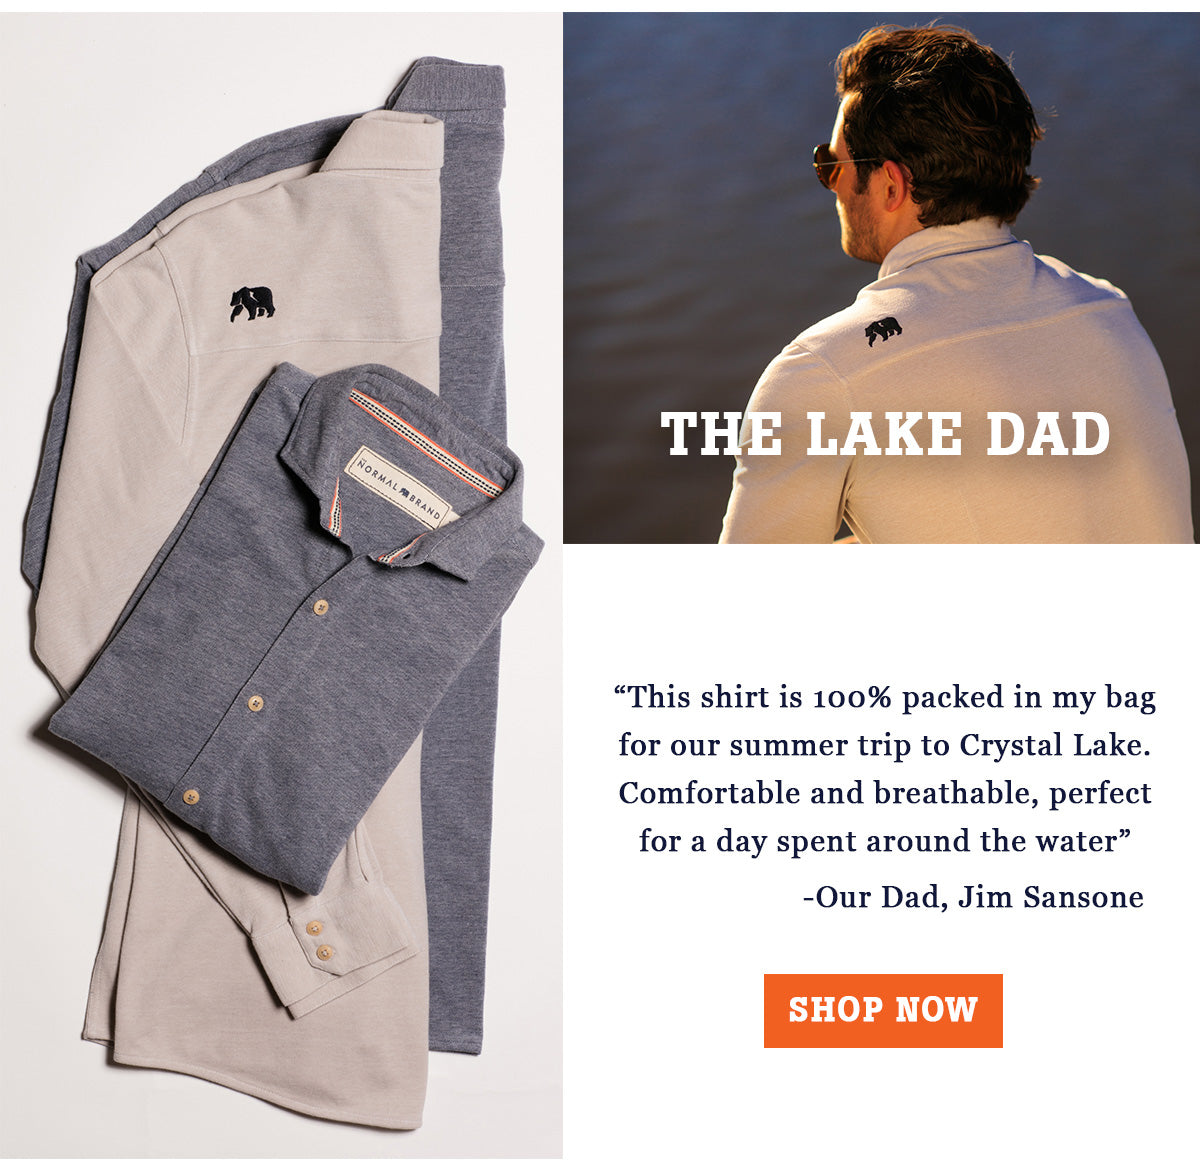 The Lake Dad